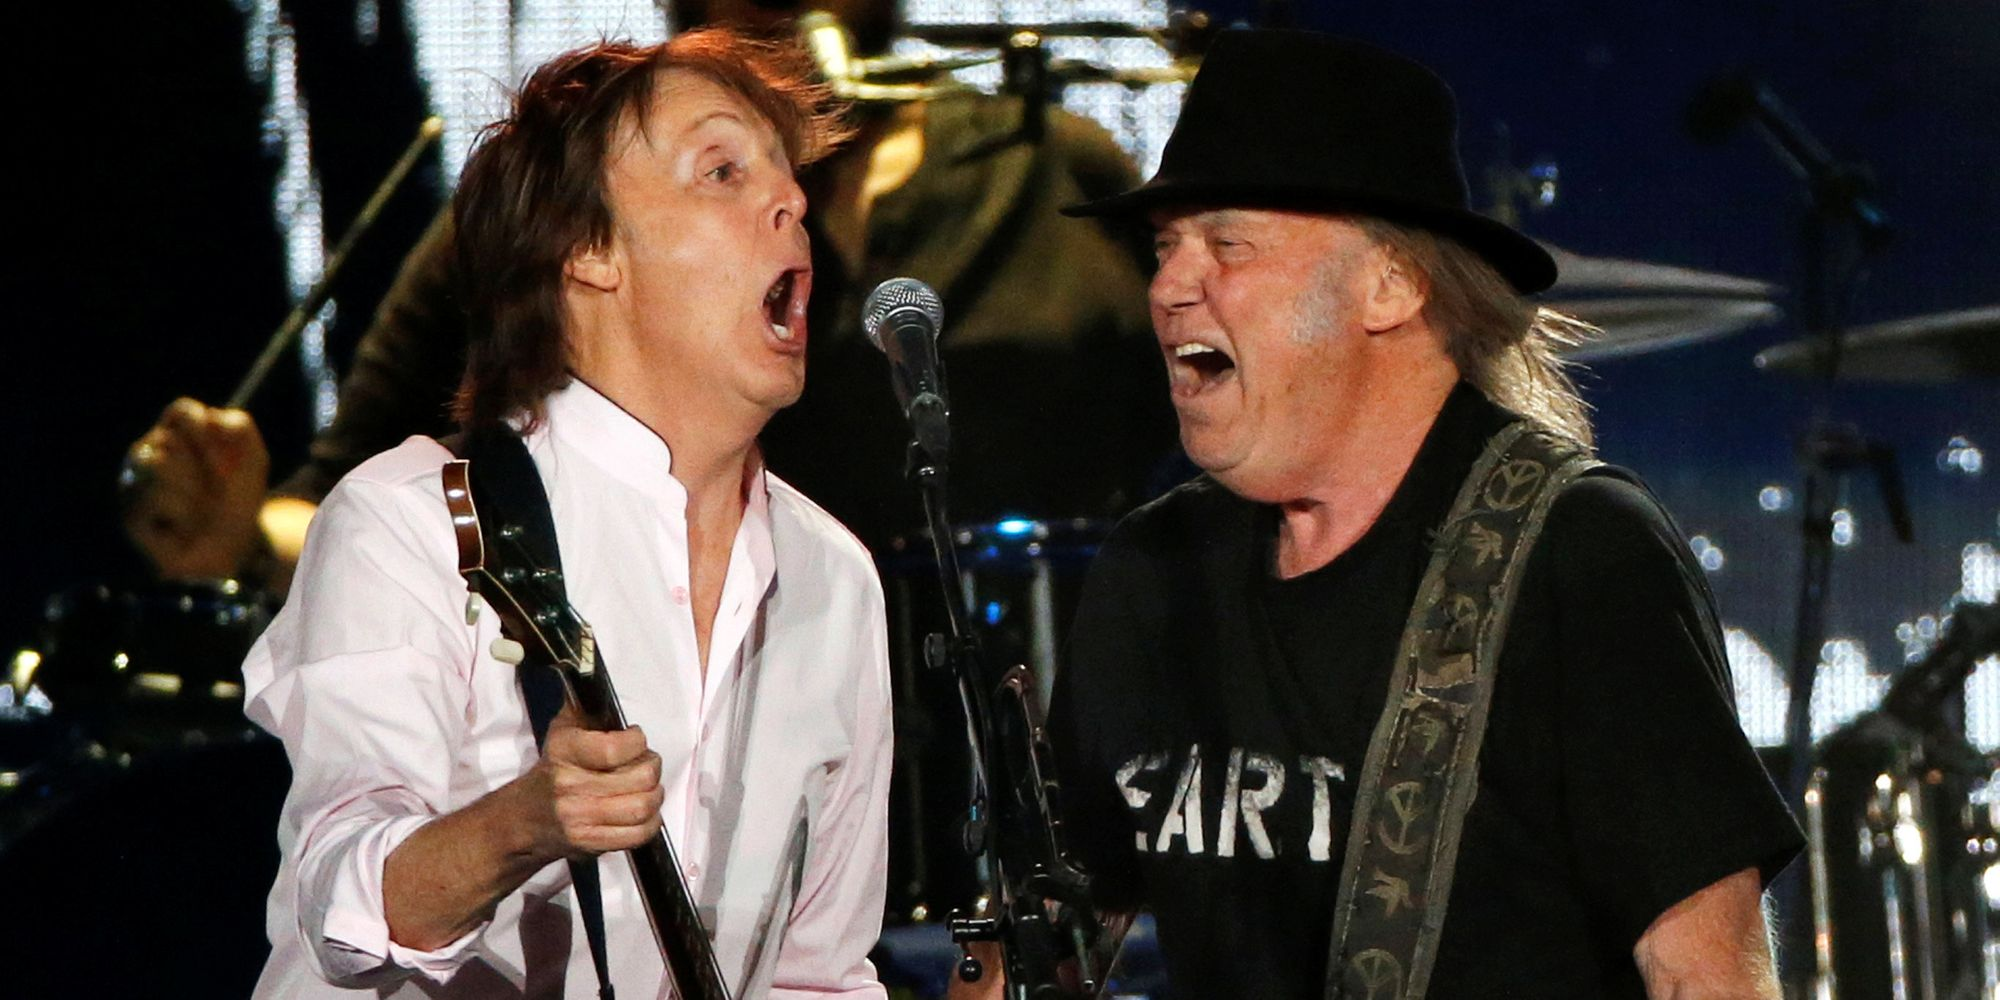 Paul McCartney And Neil Young Perform Beatles Classics At Desert Trip Music Festival